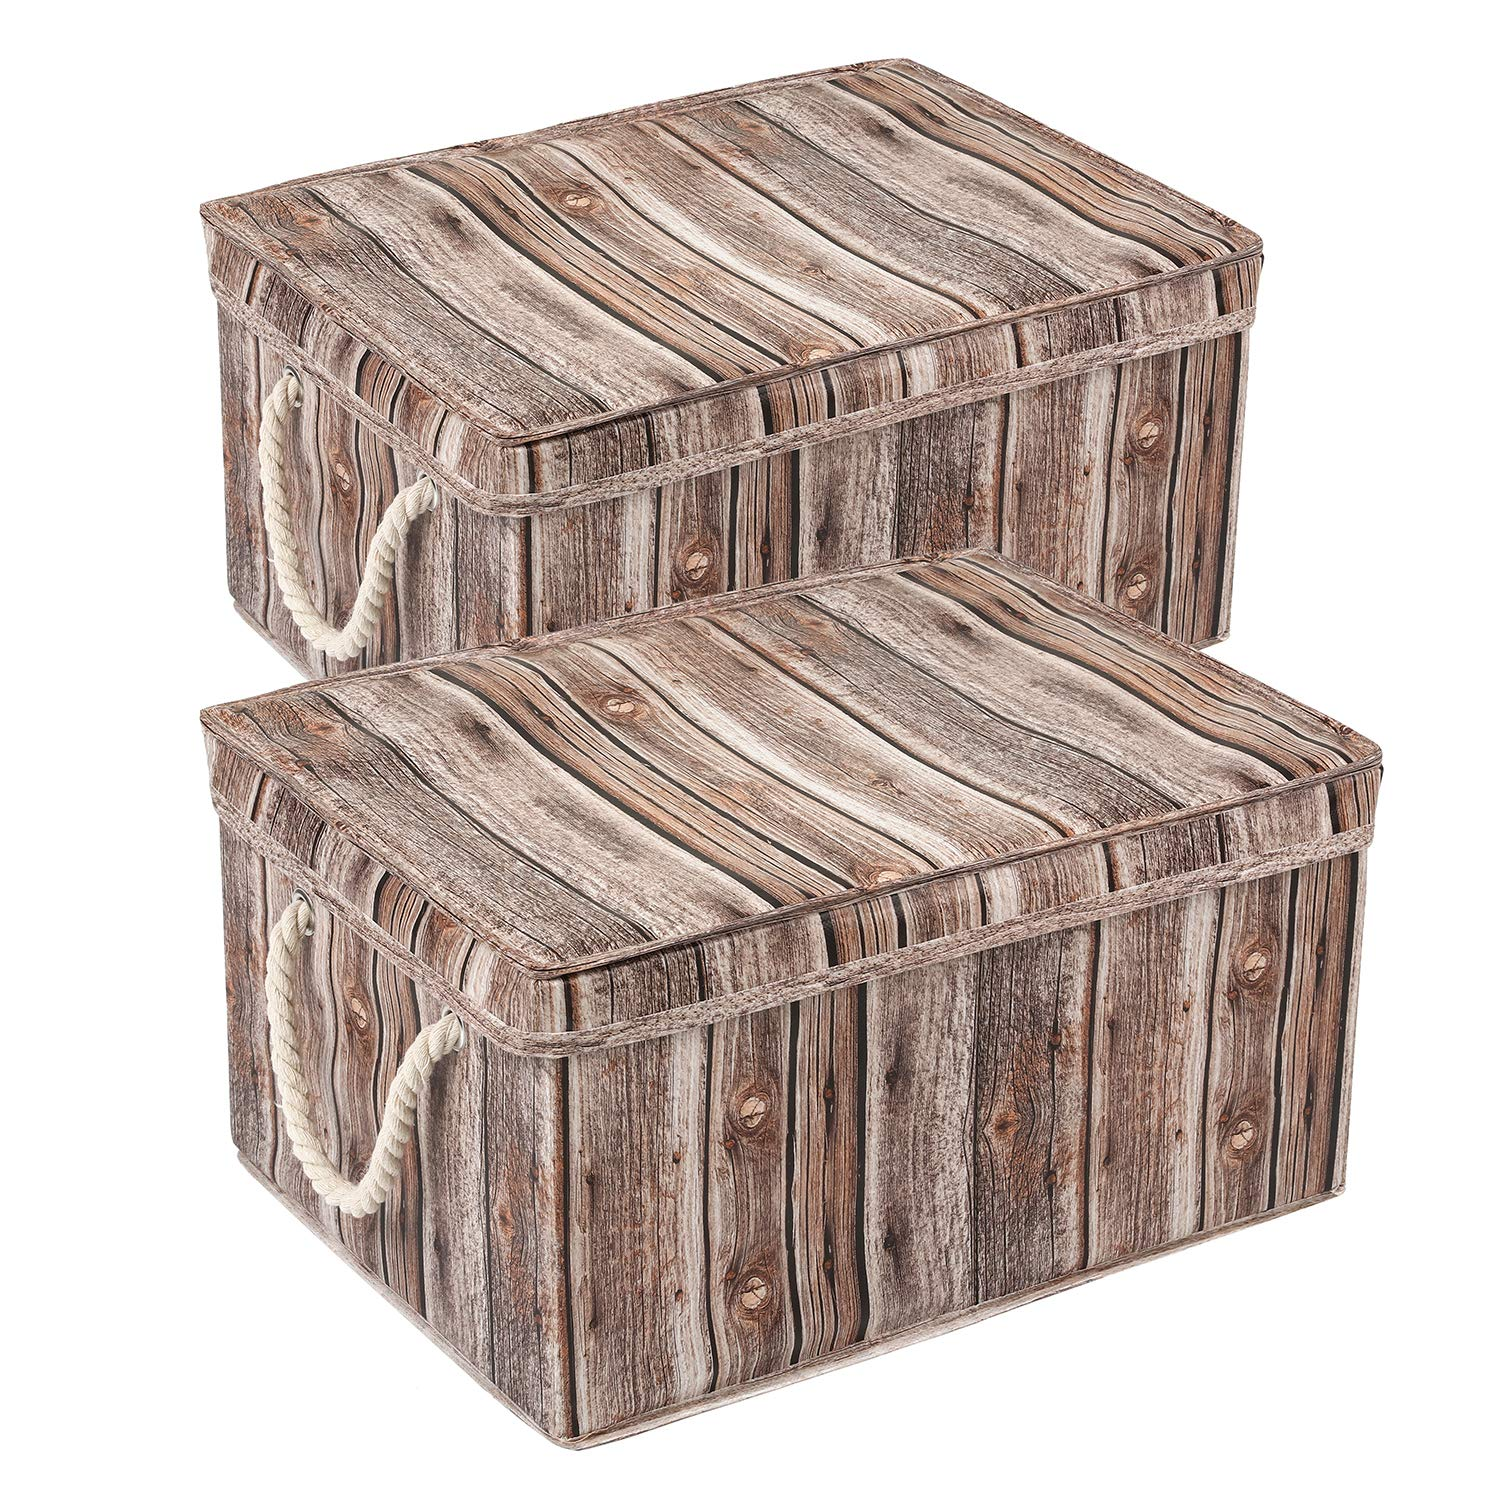 MaidMAX X-Large Cloth Storage Basket with Dual Cotton Handles and Lid, Foldable, Wood Grain Finish, Set of 2 by MaidMAX (Image #1)